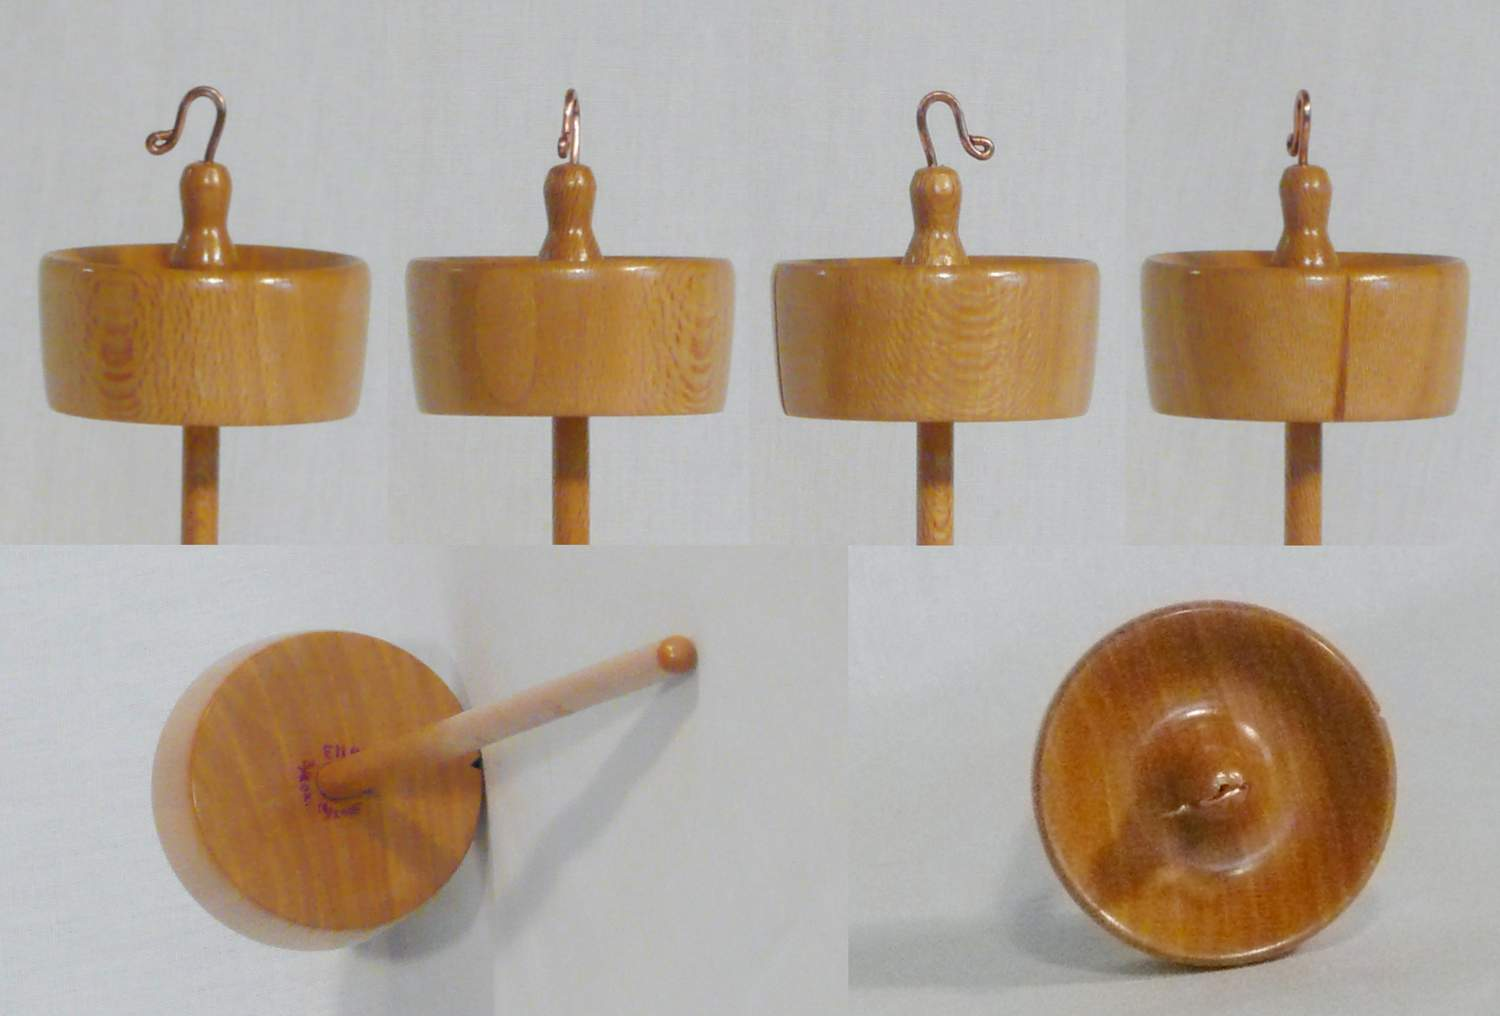 Hand turned high whorl notched drop spindle by Cynthia D. Haney of Sycamore wood.